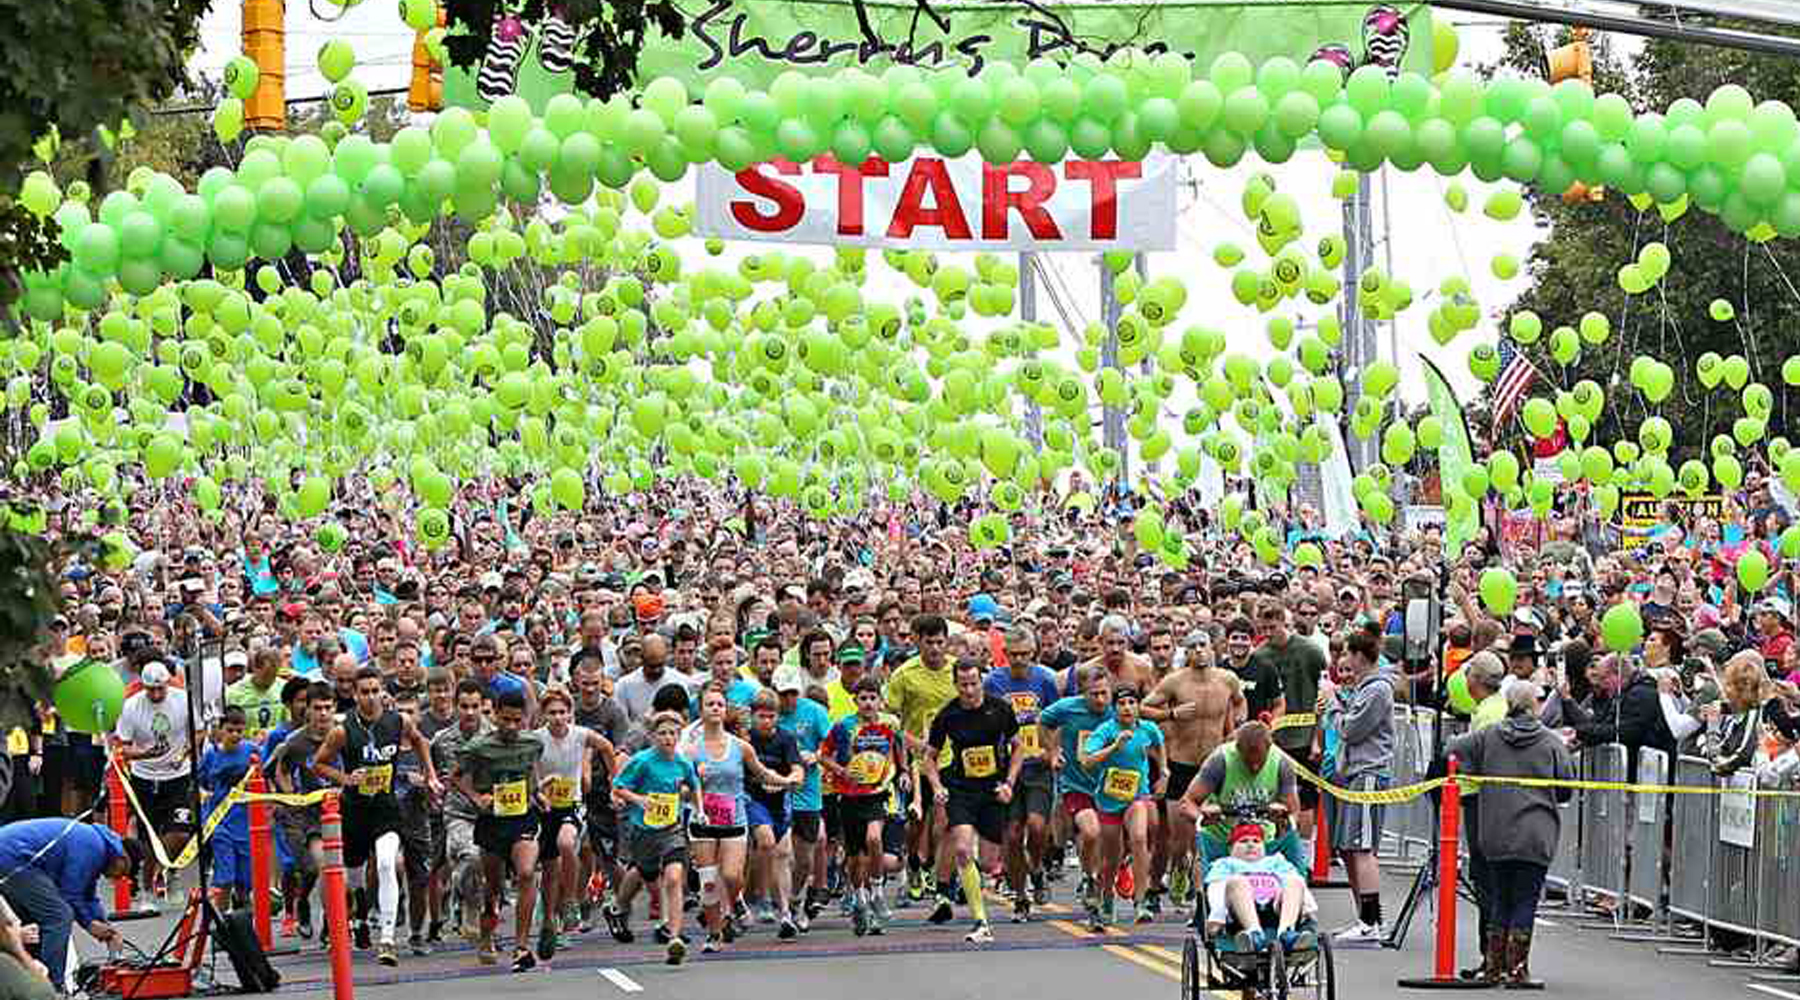 Picture of the starting line of a marathon with lime green balloons surrounding the runners.